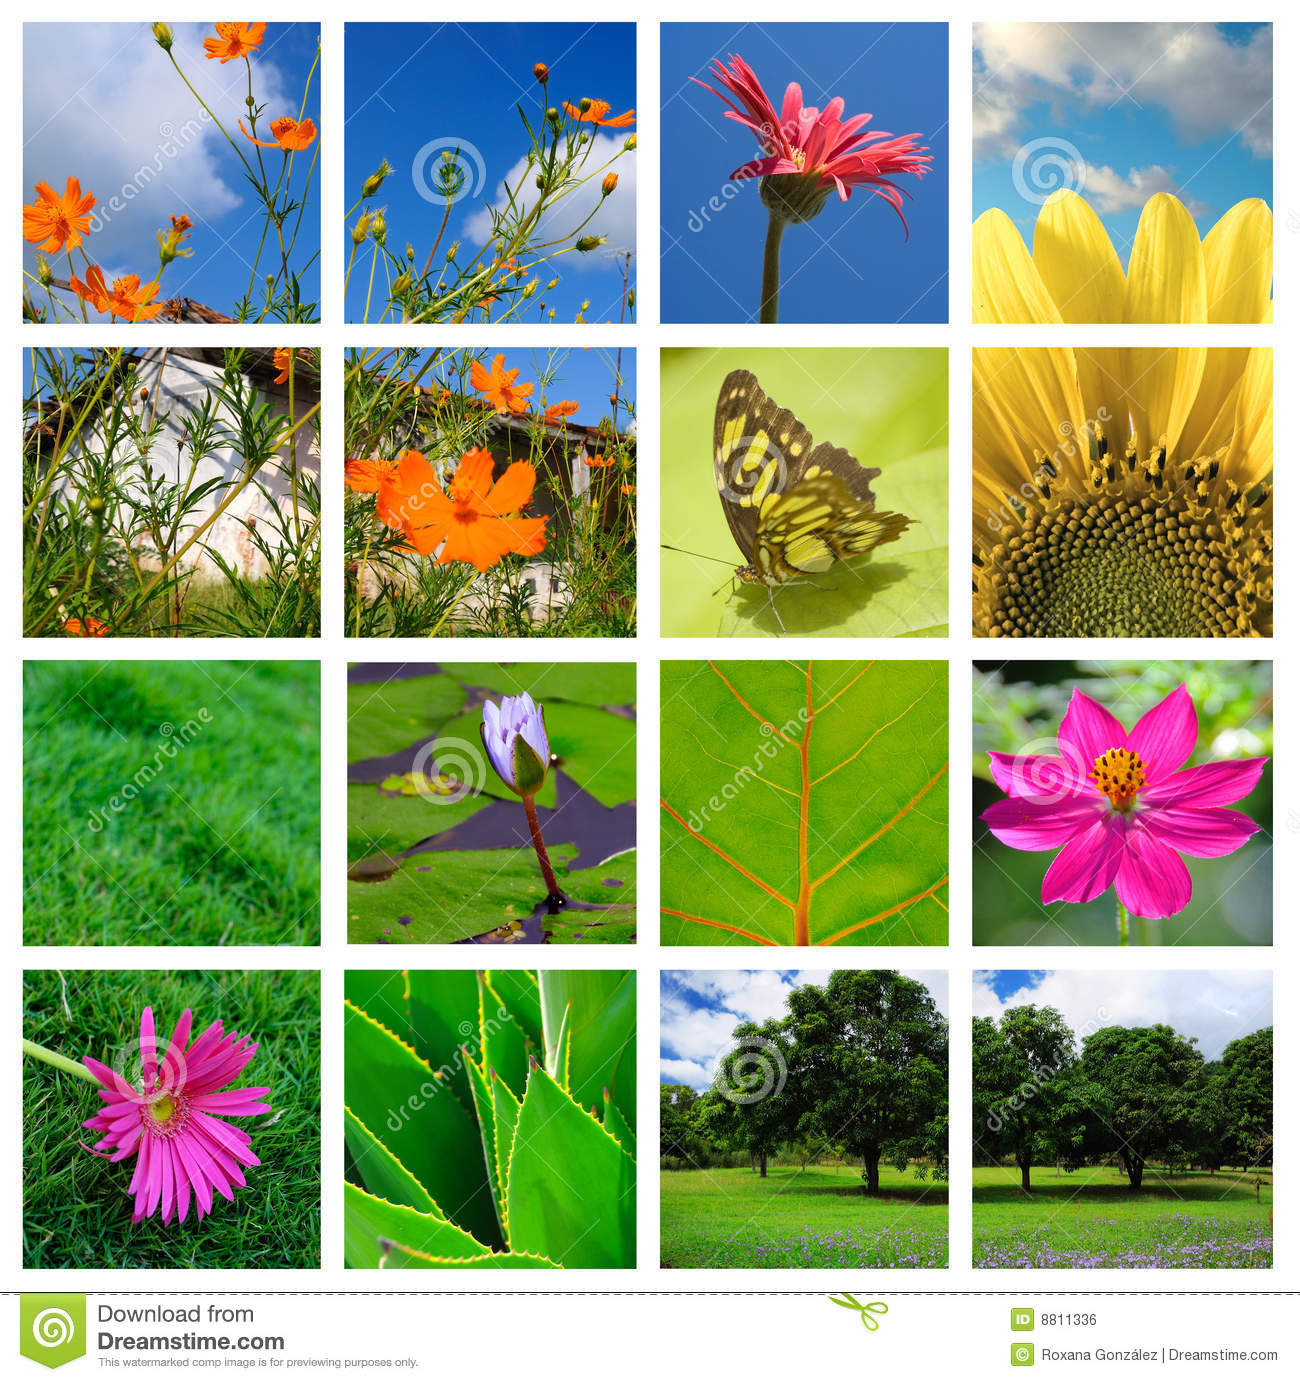 Spring And Nature Collage Royalty Free Stock Image - Image: 8811336